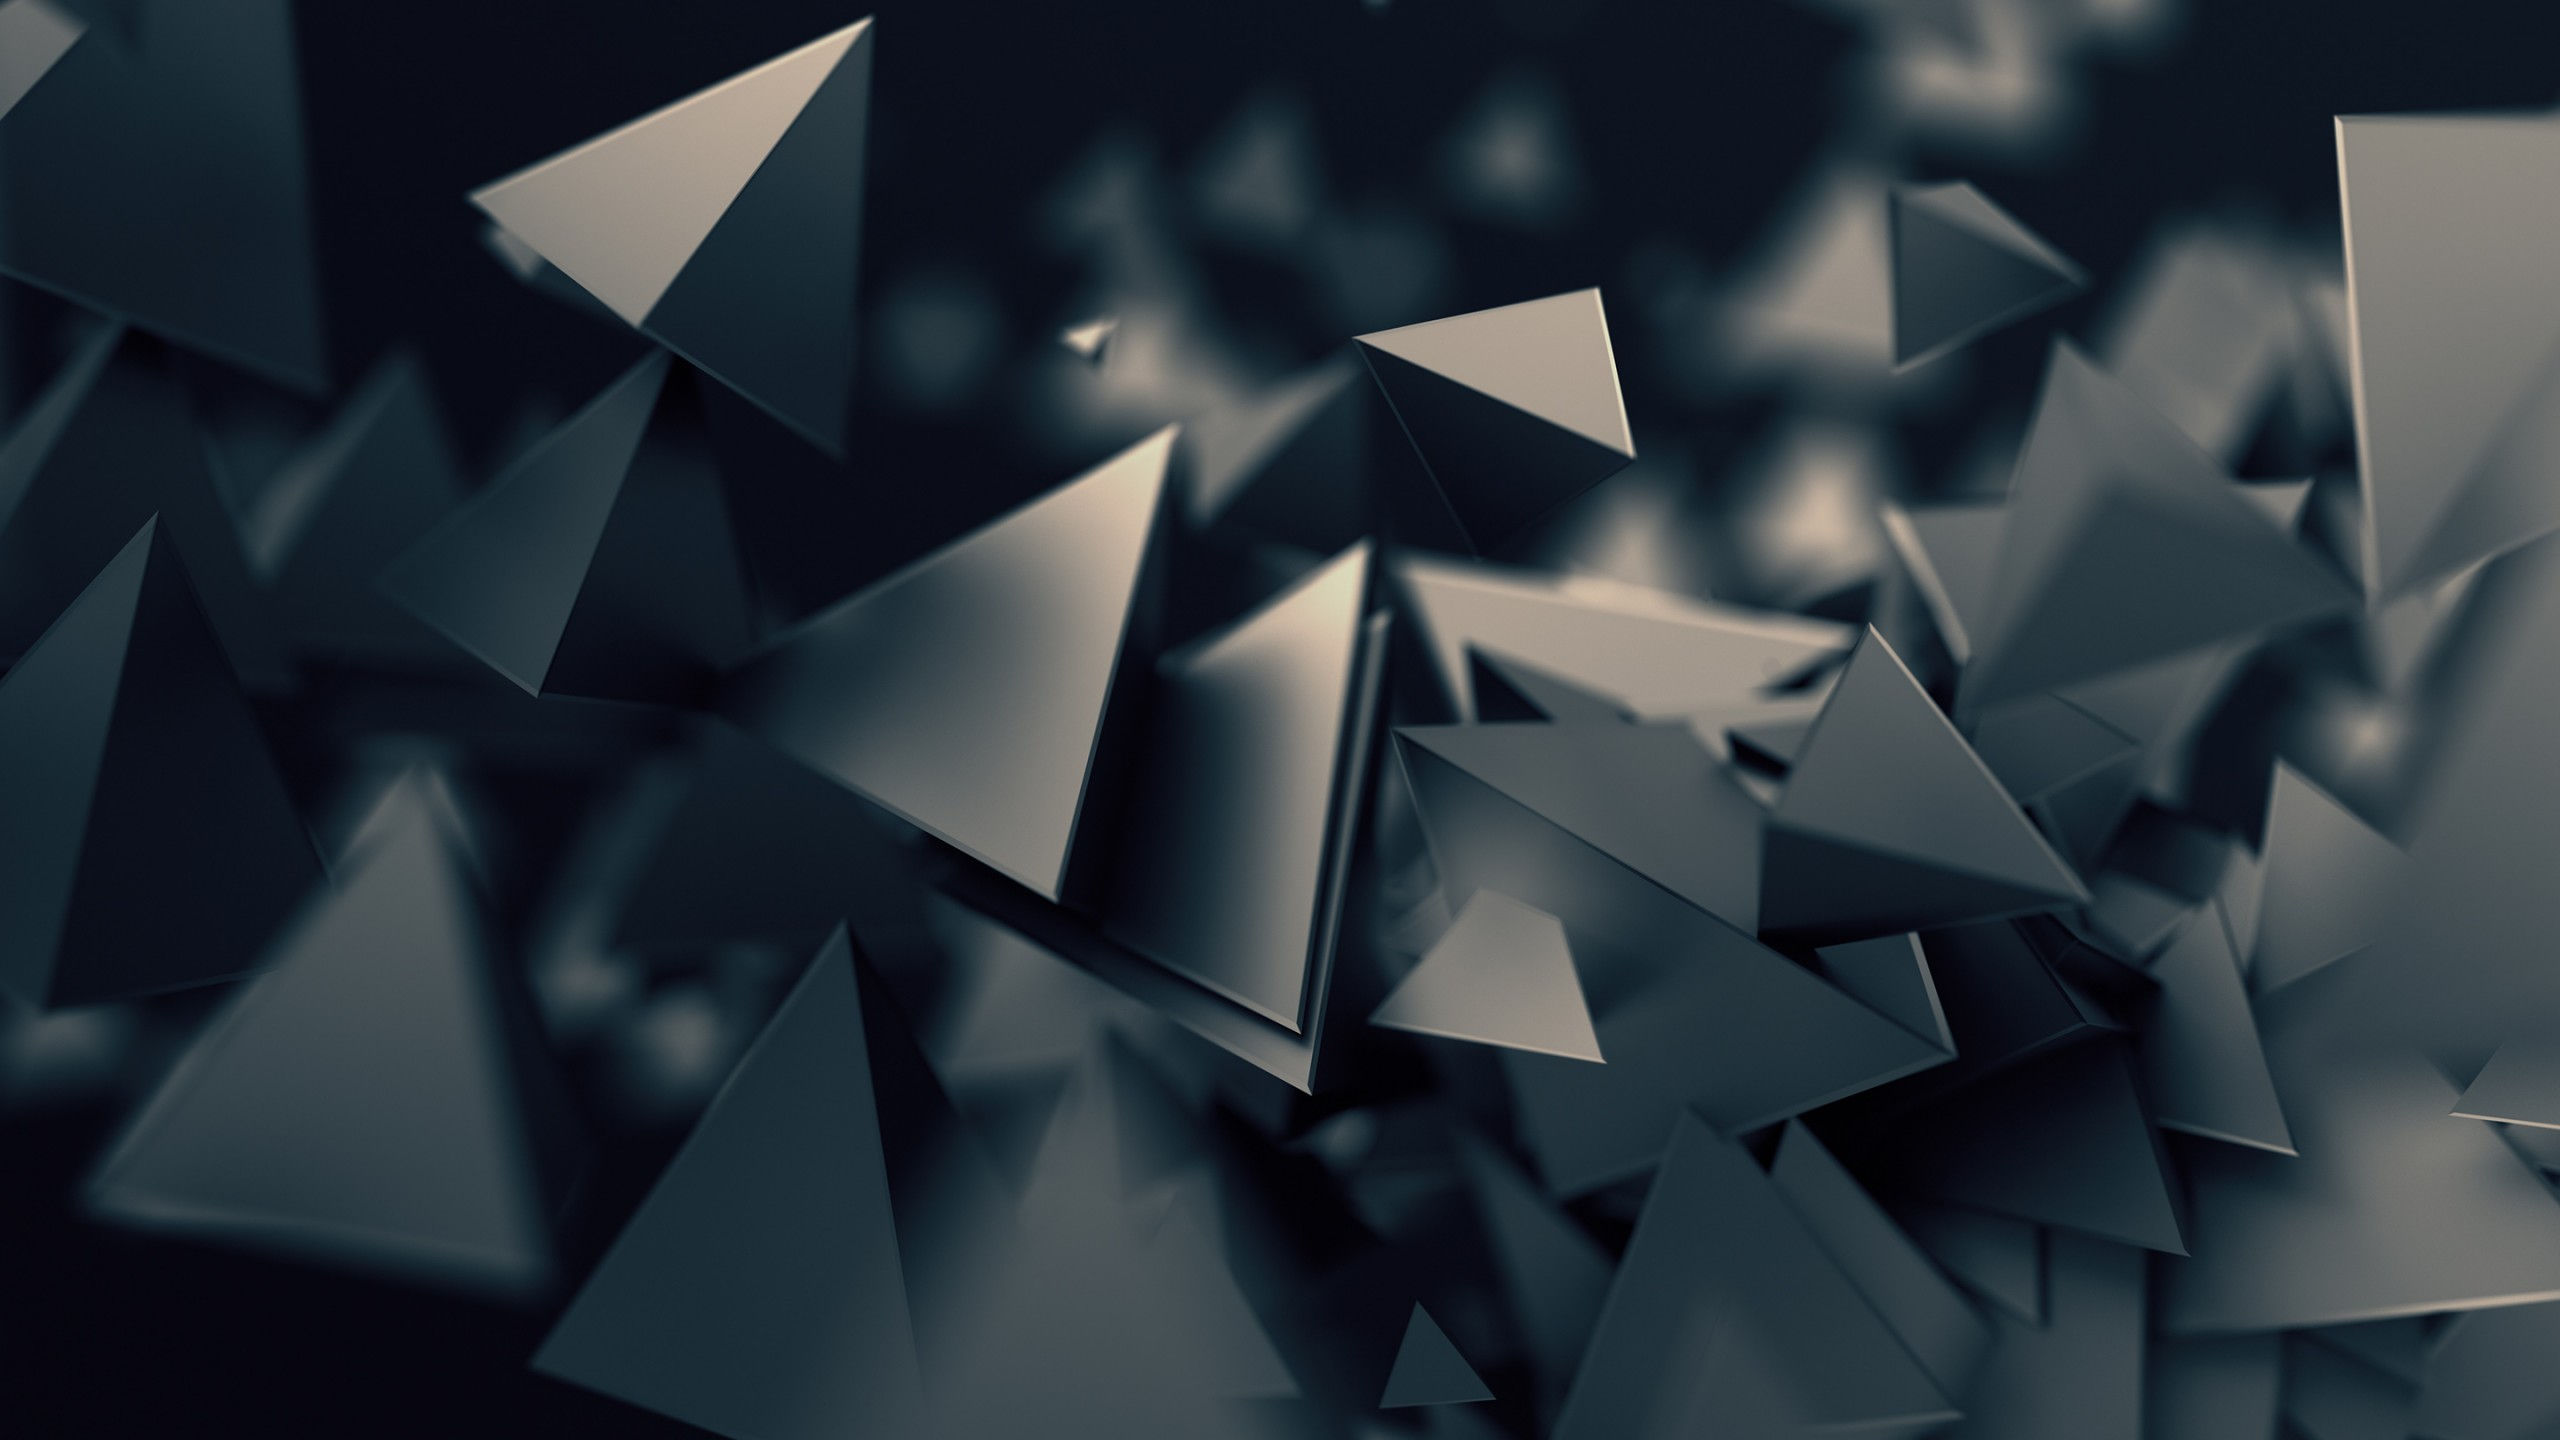 Res: 2560x1440, Abstract / Triangles Wallpaper